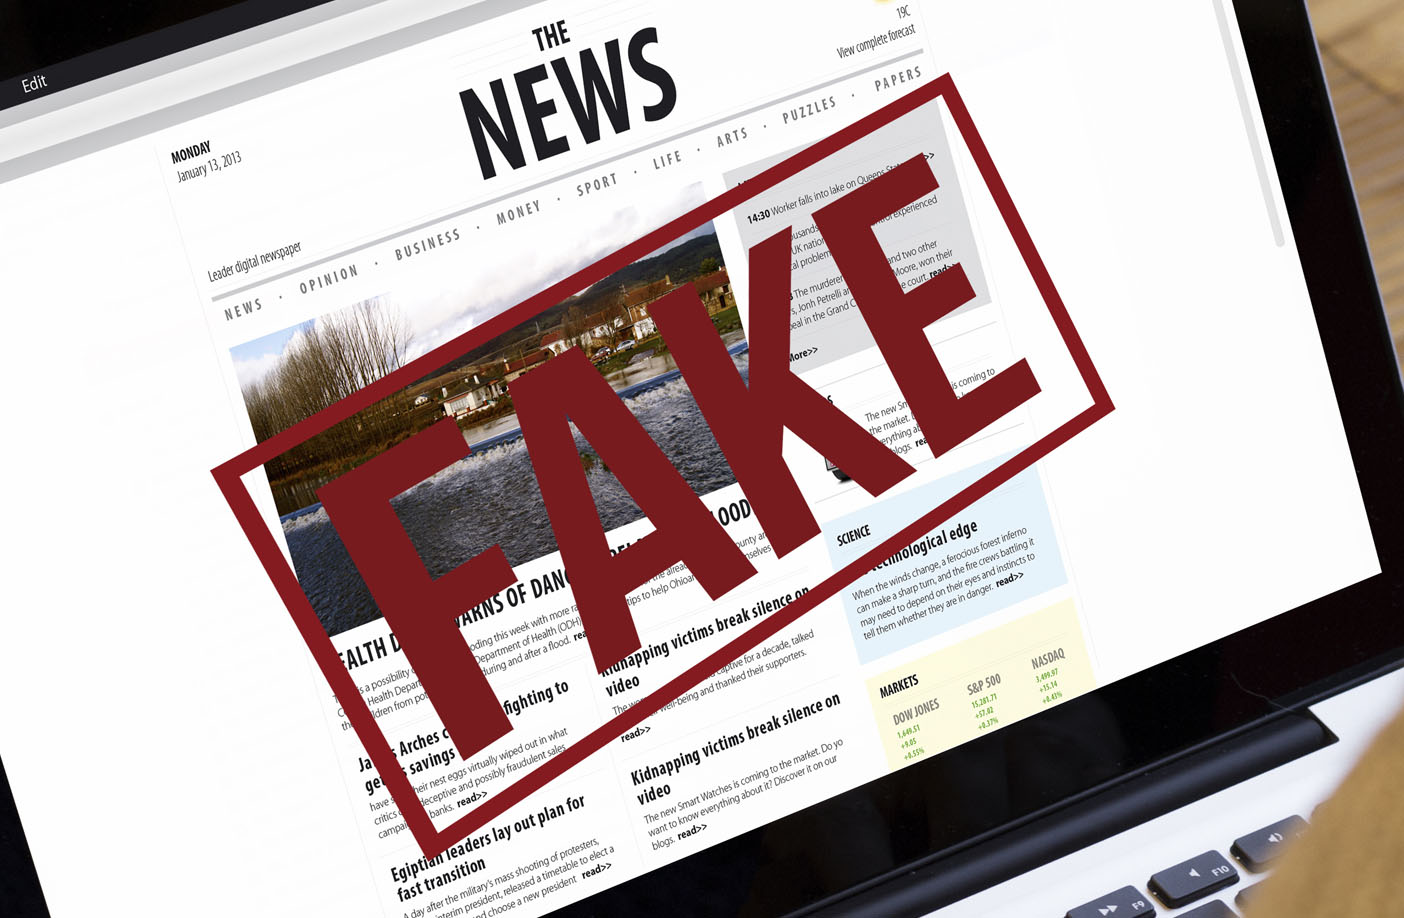 Partisanship predicts belief in fake news more strongly than conspiracy mentality, study finds